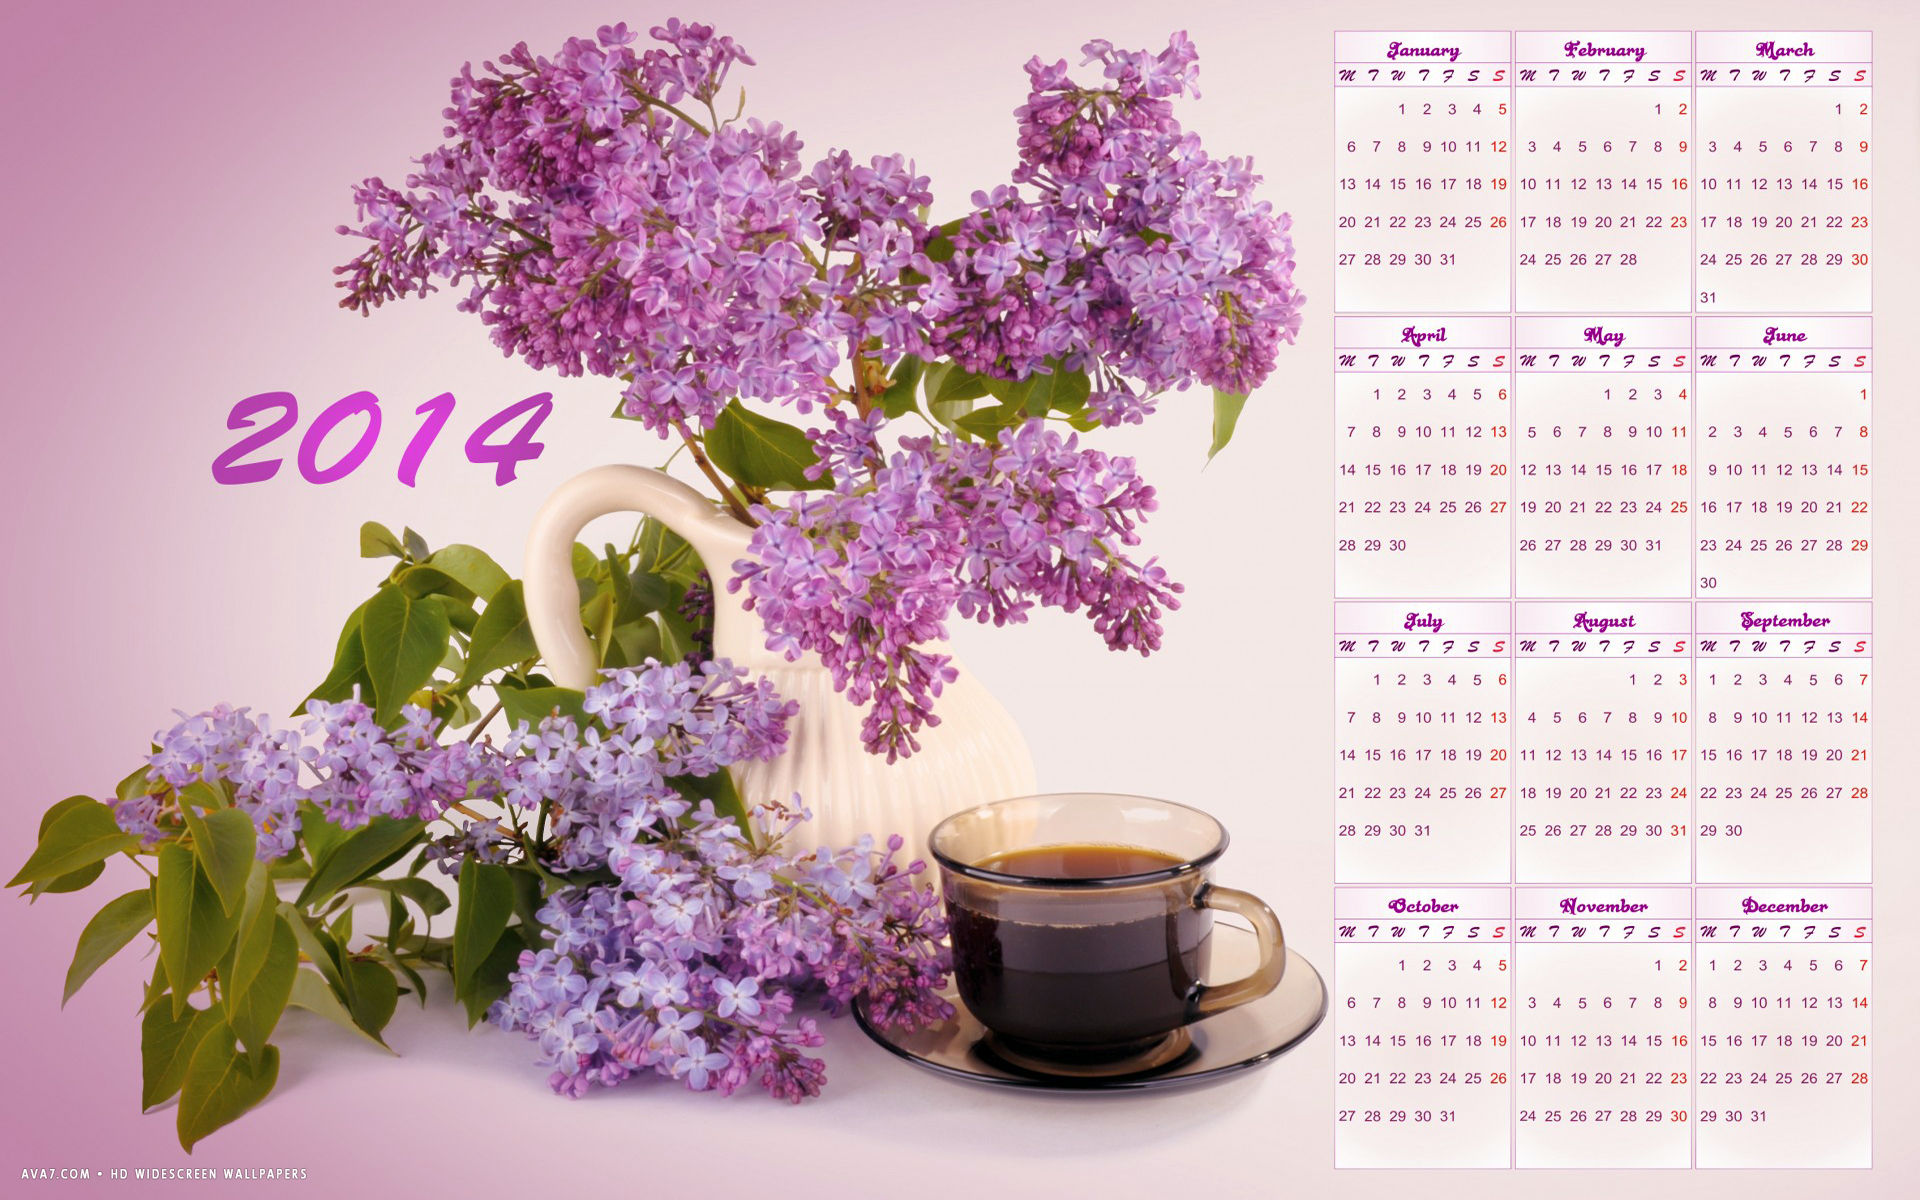 new year 2014 calendar pink lilac flowers coffee holiday hd widescreen wallpaper